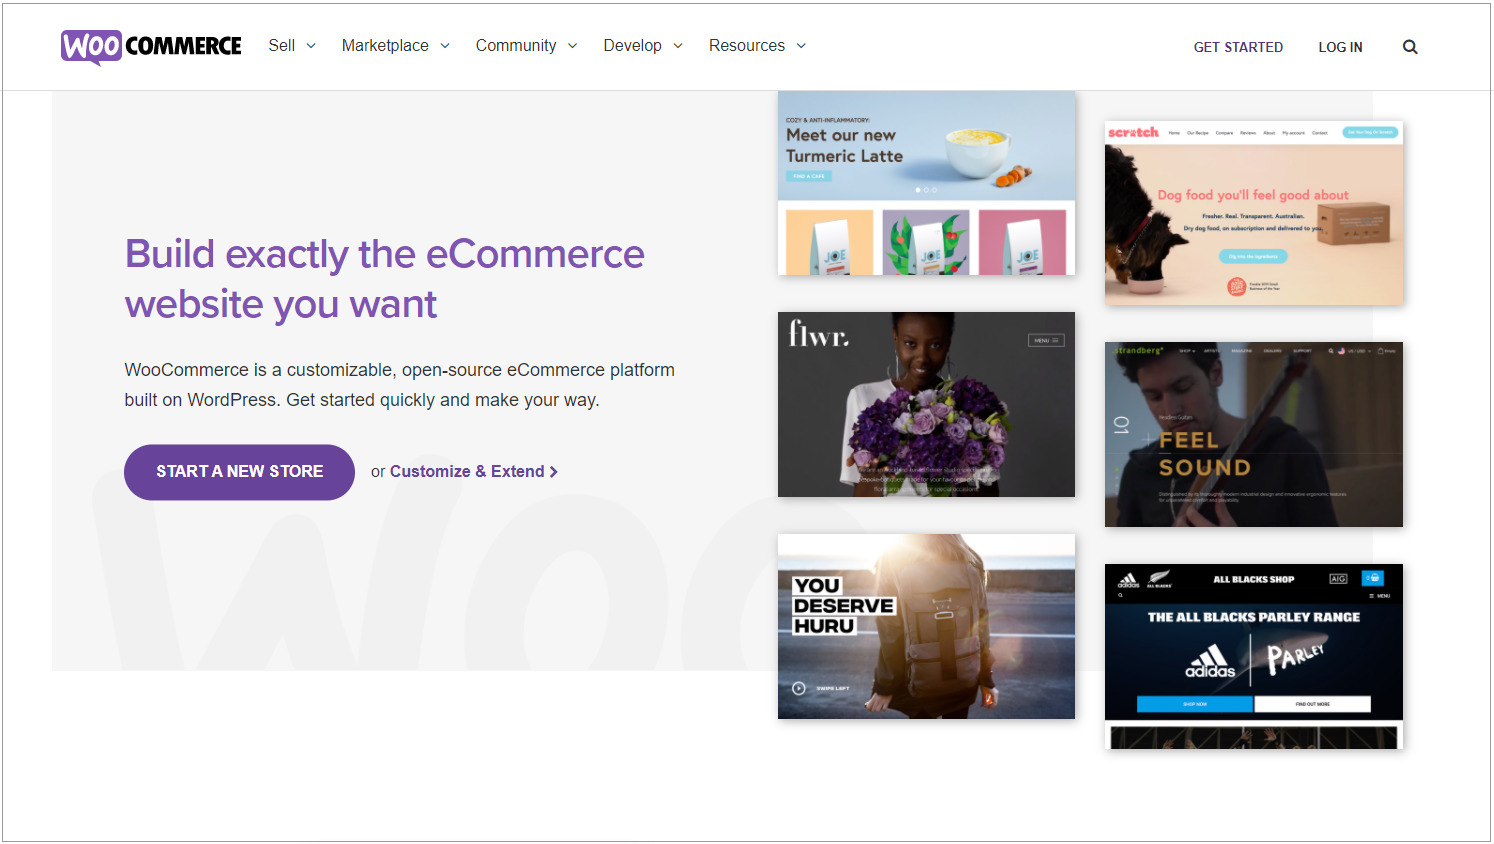 Already have a WordPress site, WooCommerce is a noteworthy platform